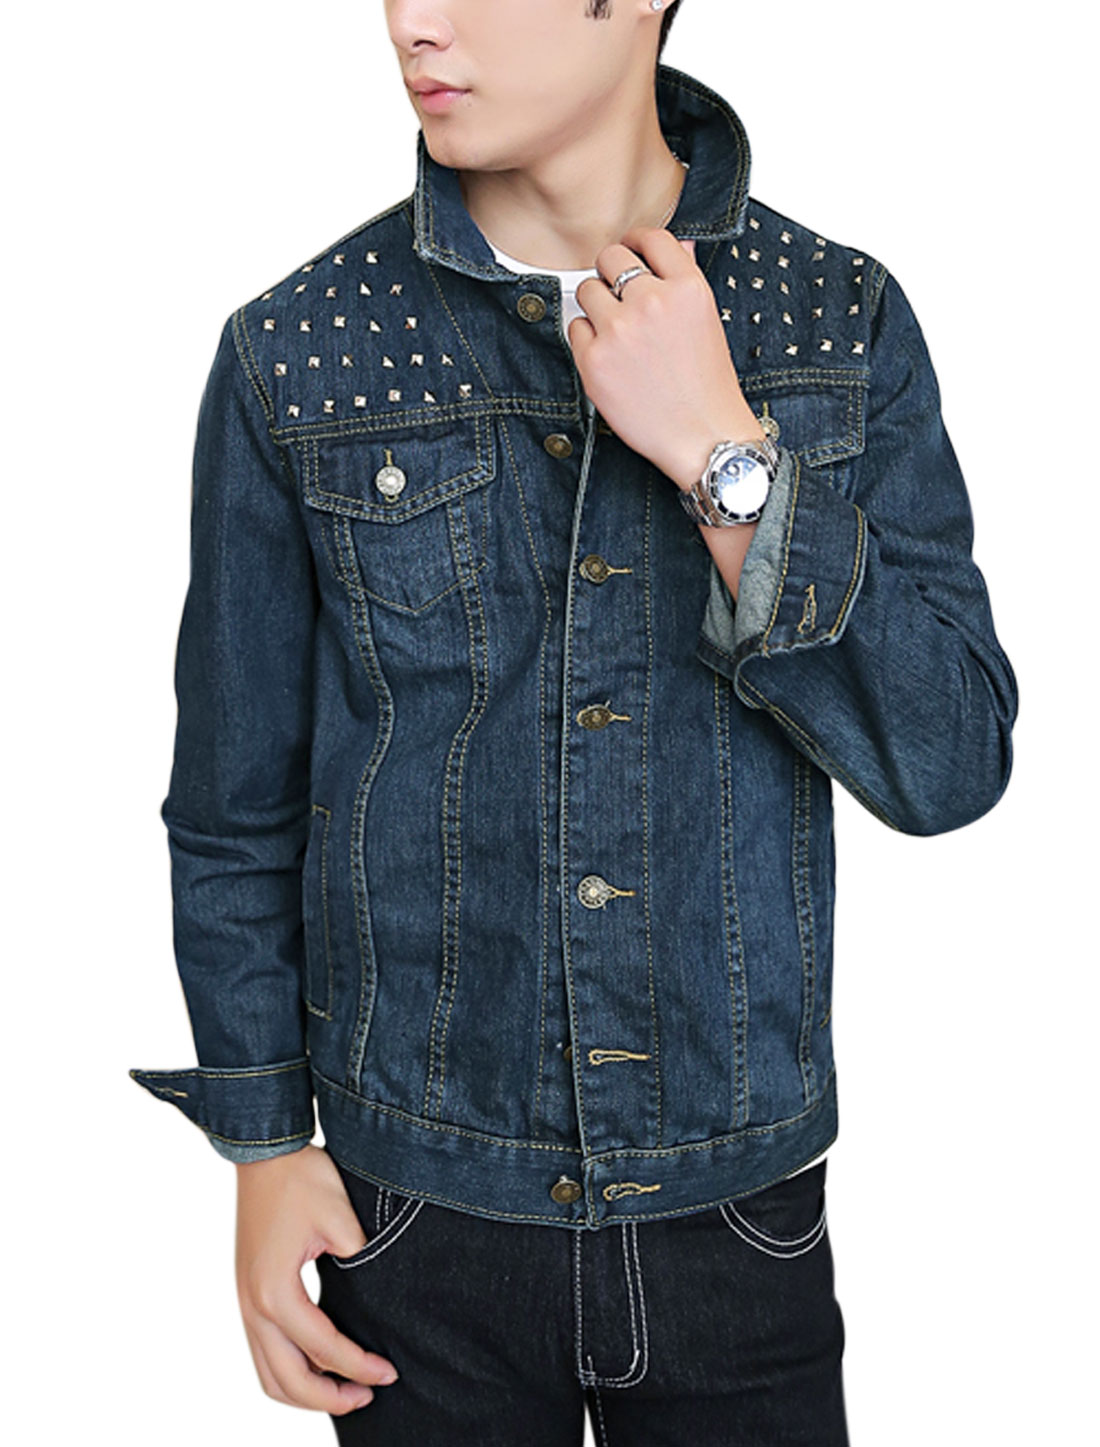 Men Signle Breasted Double Slant Pocket Front Stylish Jean Jacket Dark Blue M